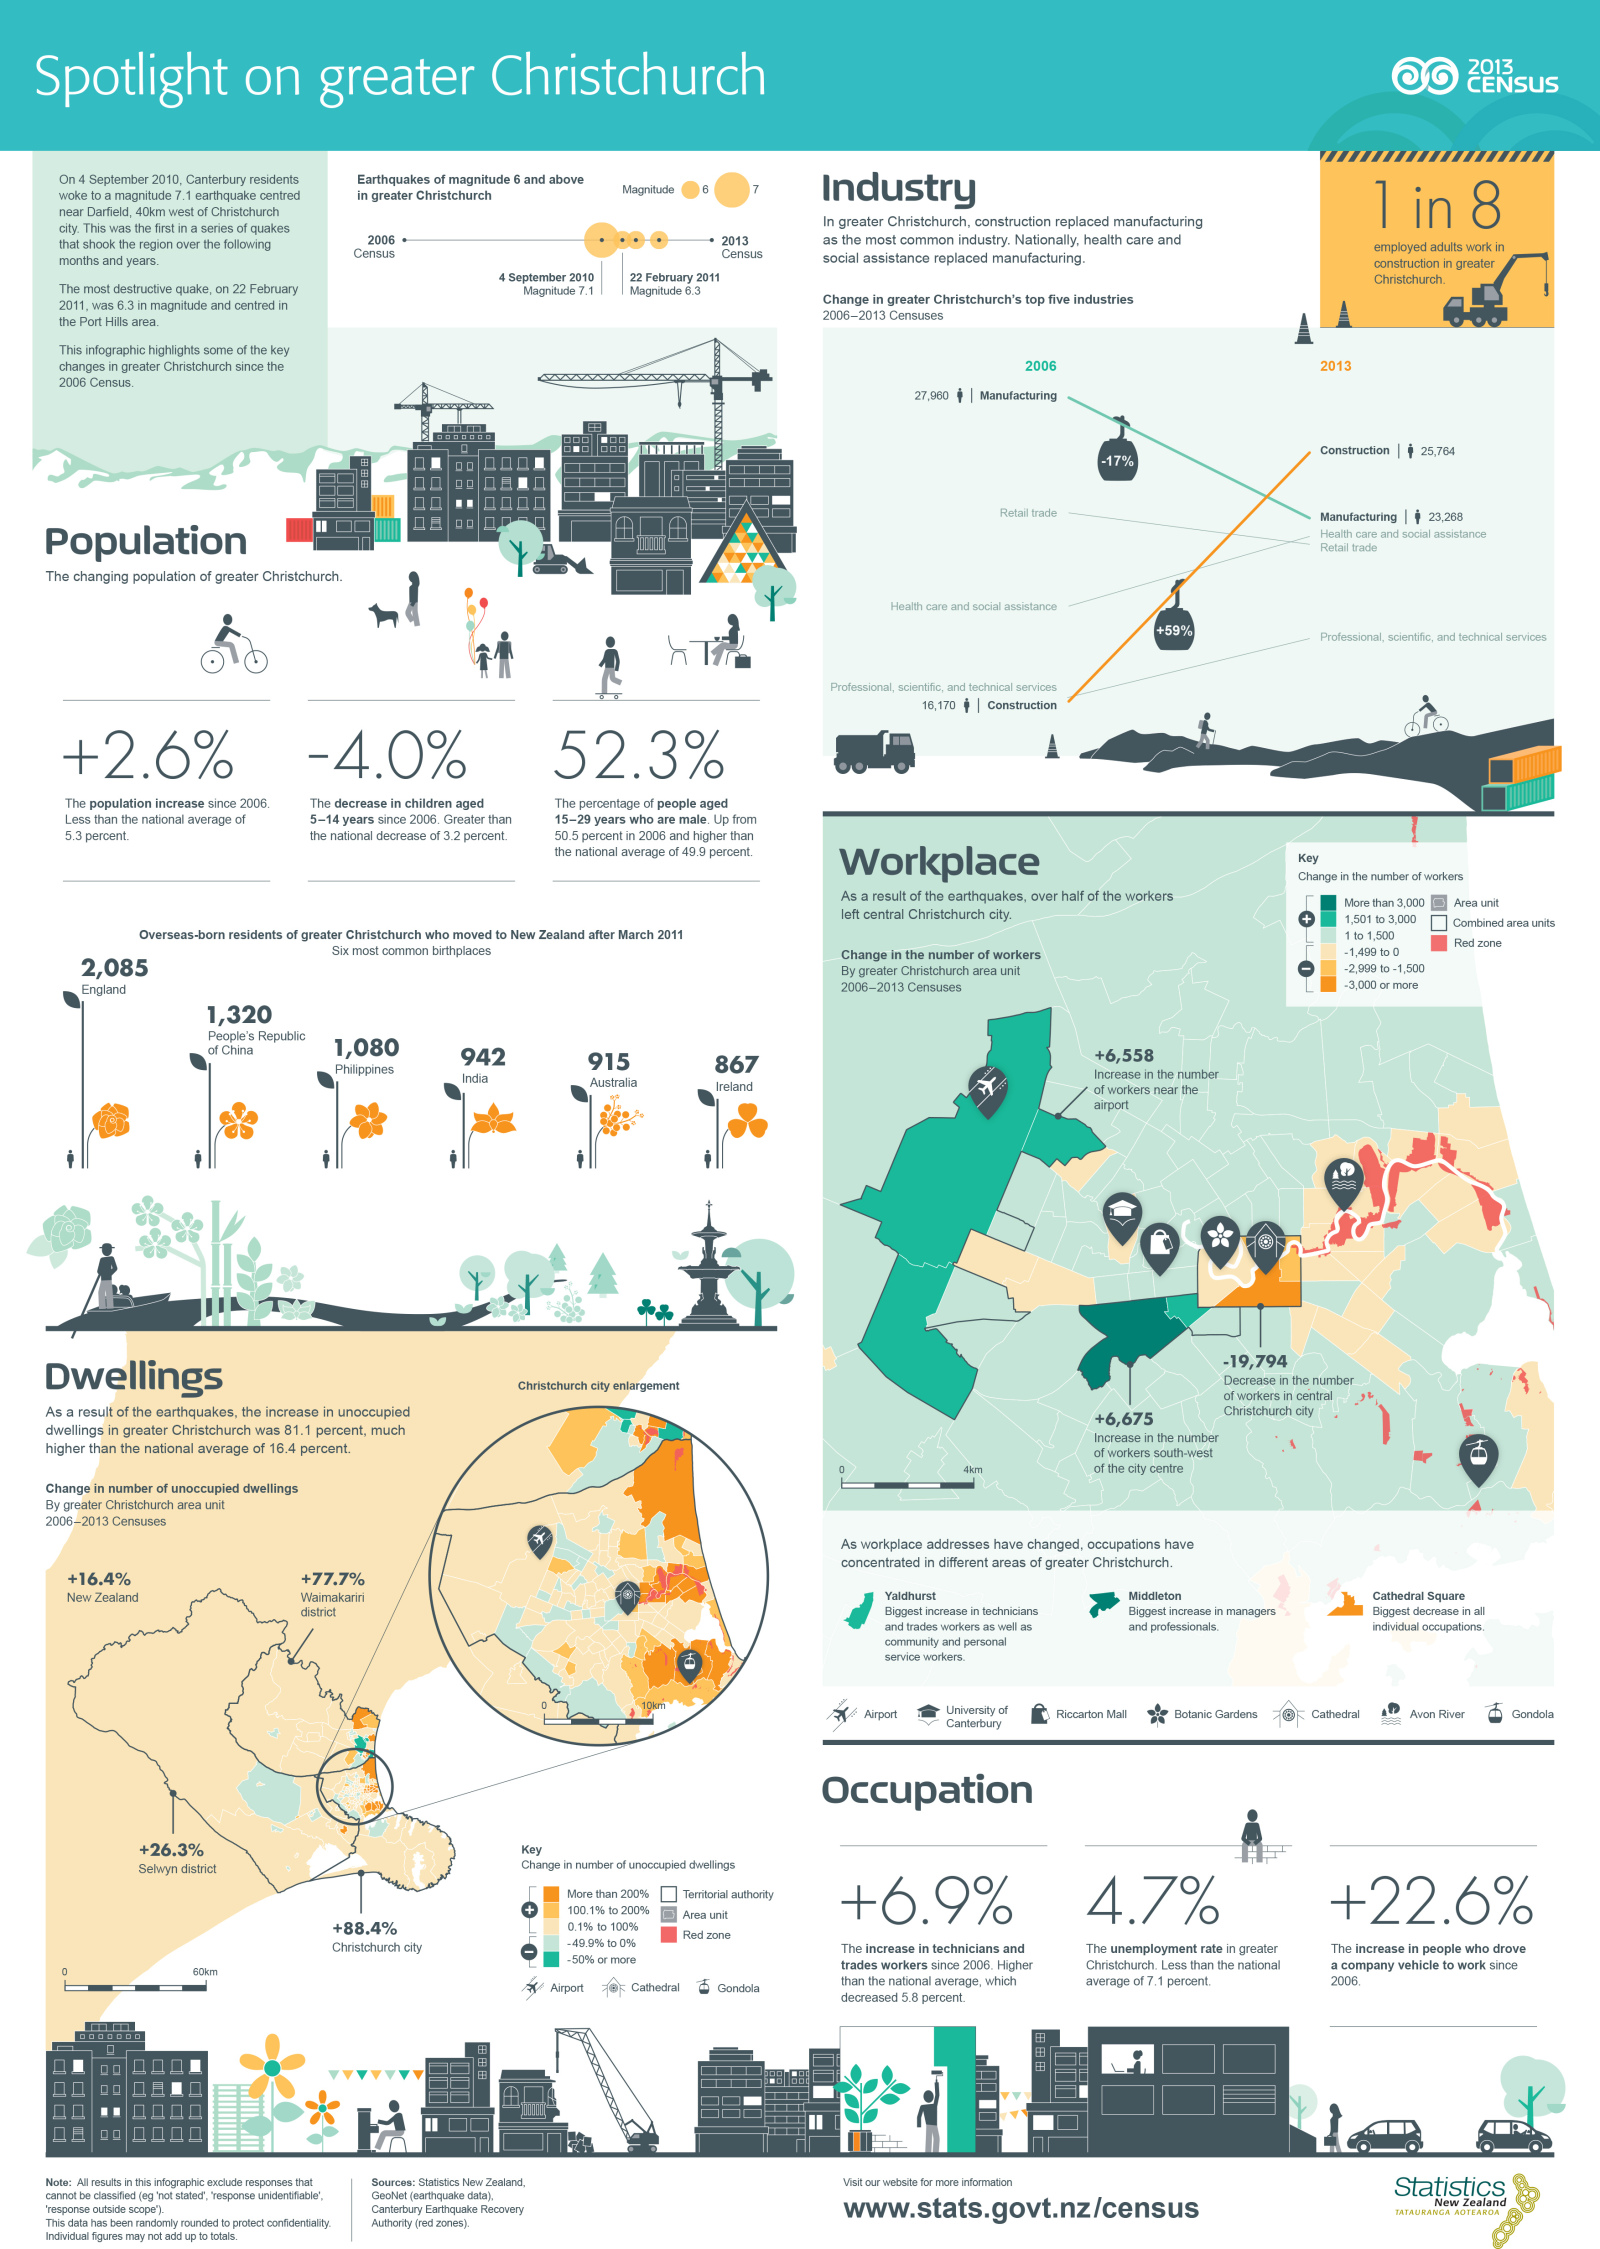 2013-Census-Greater-Christchurch-infographic-poster